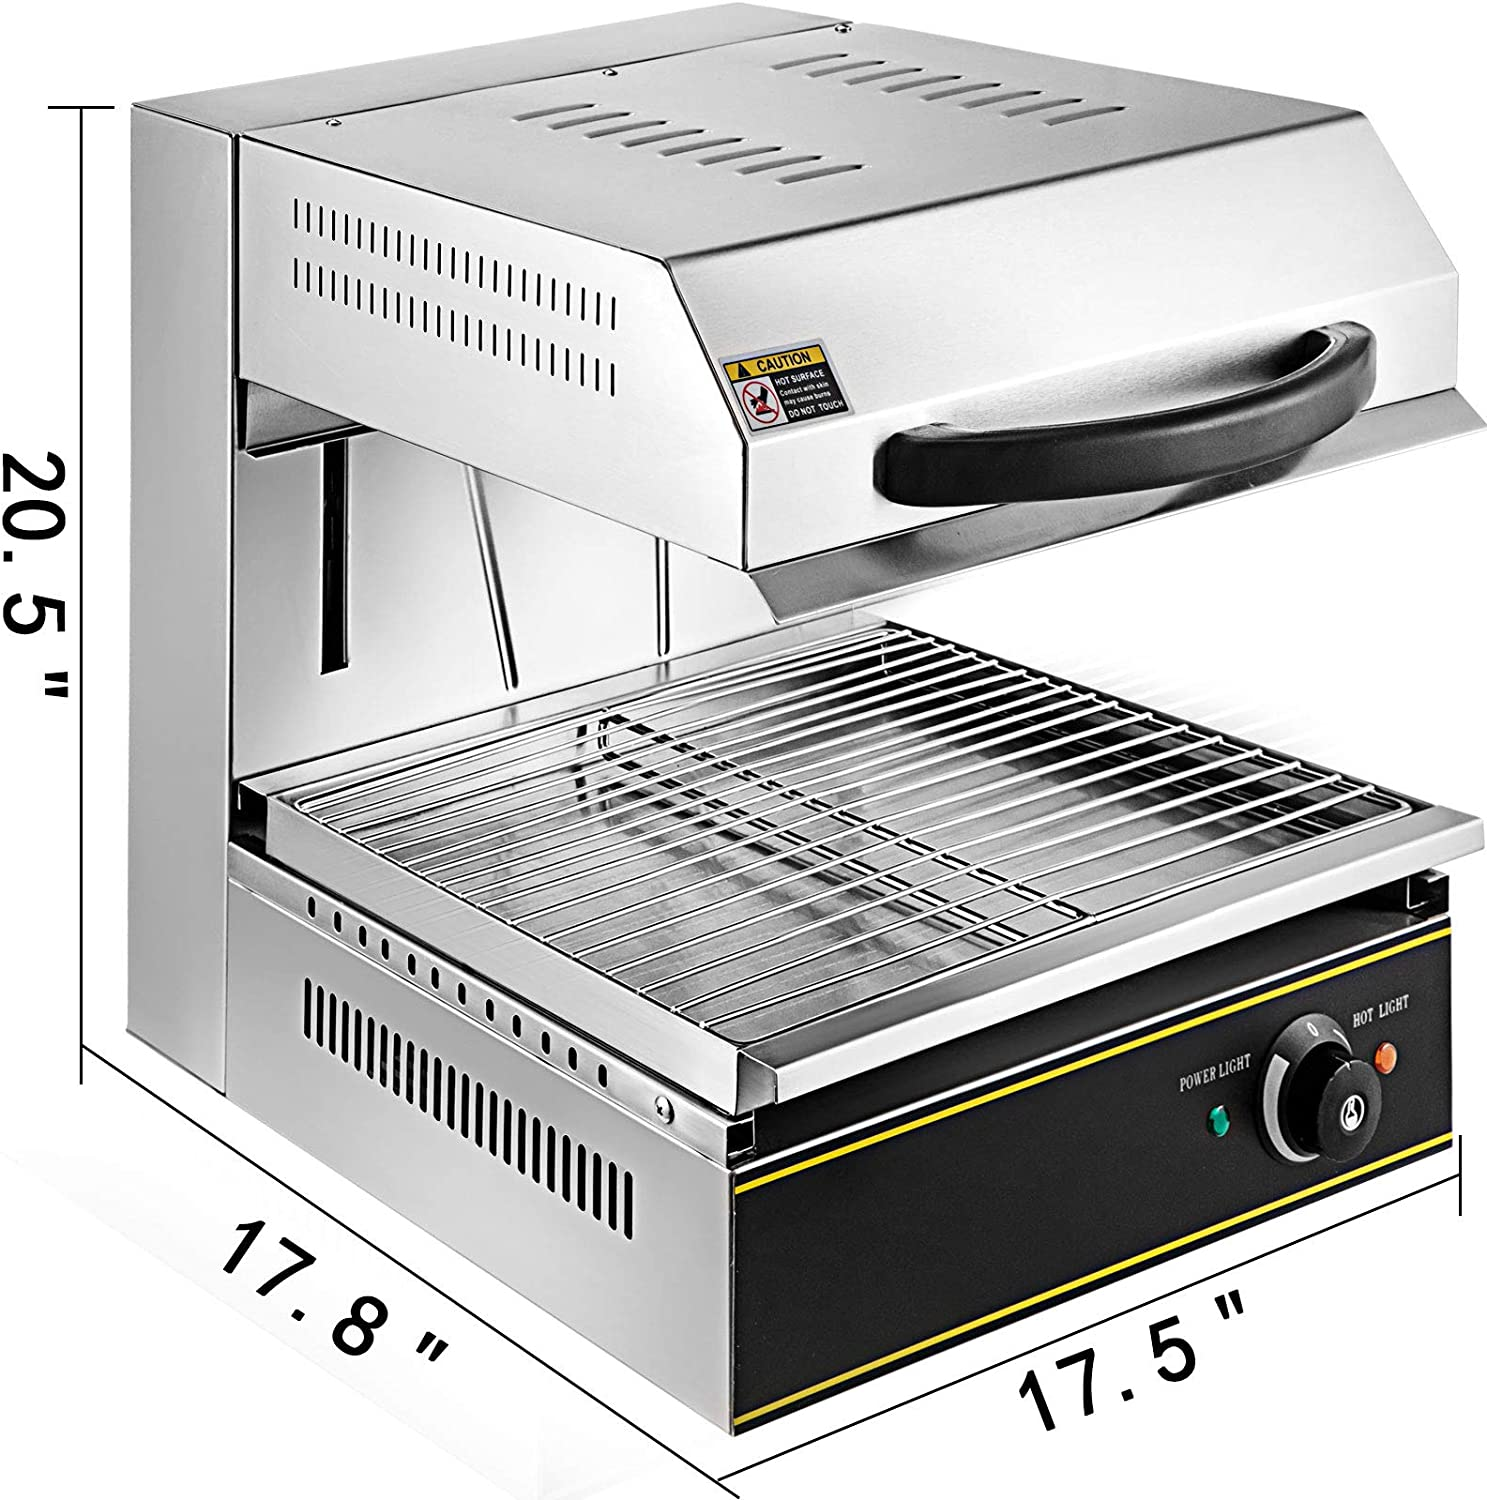 Vbenlem Countertop Salamander Broiler 2800w 17 5 Inch Width Kitchen Salamander Oven Liftable Stainless Steel Electric Cheese Melter Temperature Control 50 300 For Commercial And Home Use Industrial Scientific Commercial Cooking Equipment G2